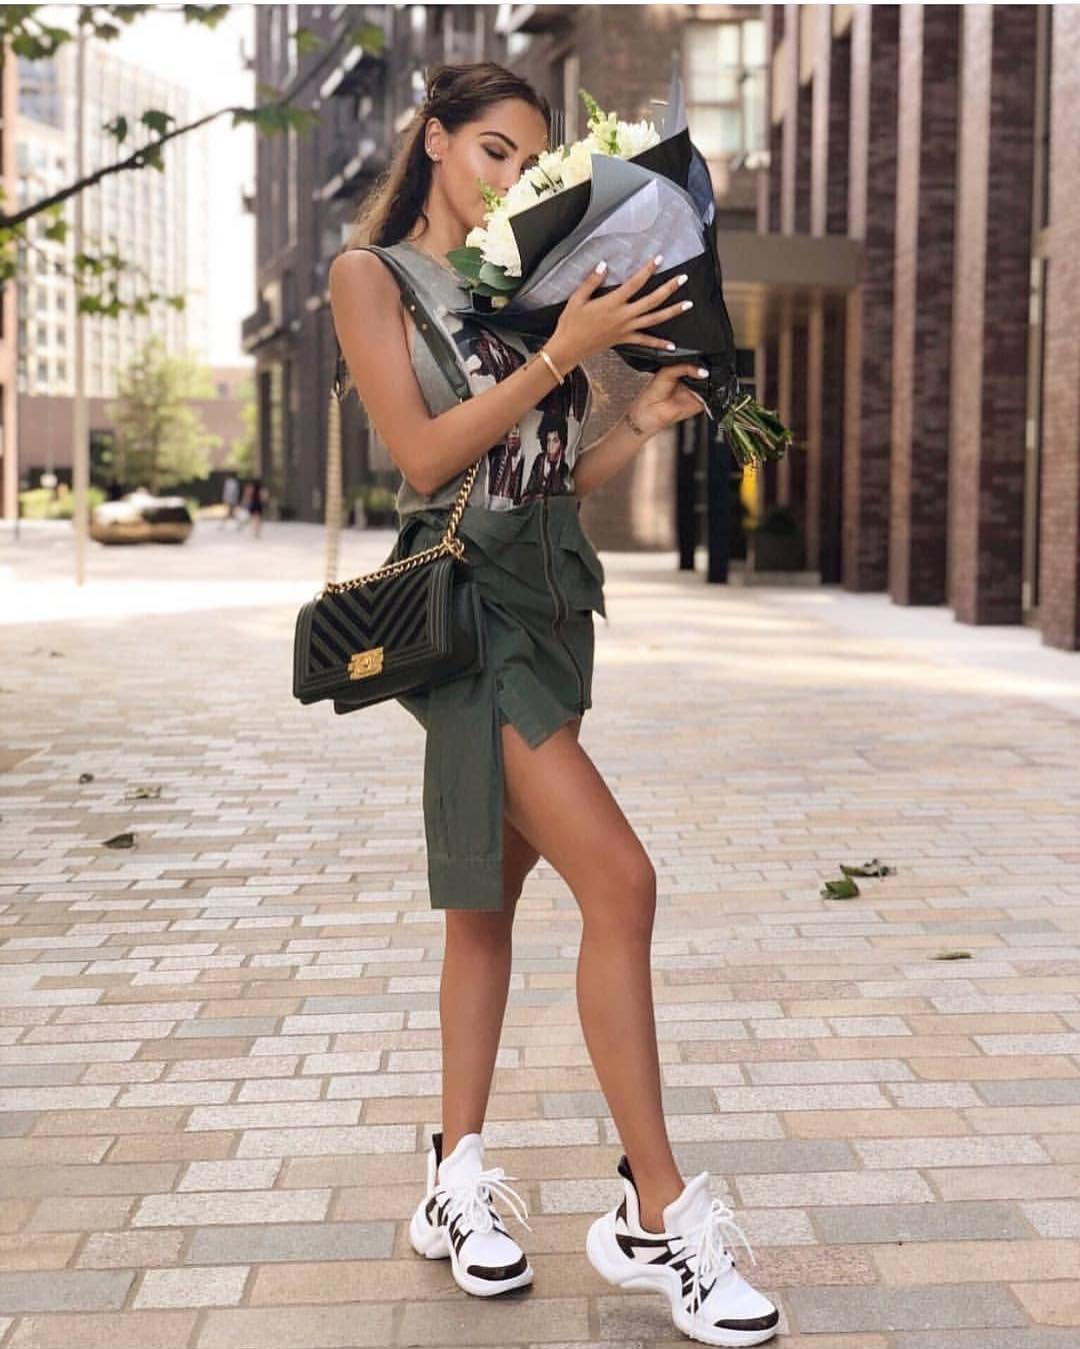 Grey Tank Top With A green Army Jacket Worn As A Skirt For Summer 2019